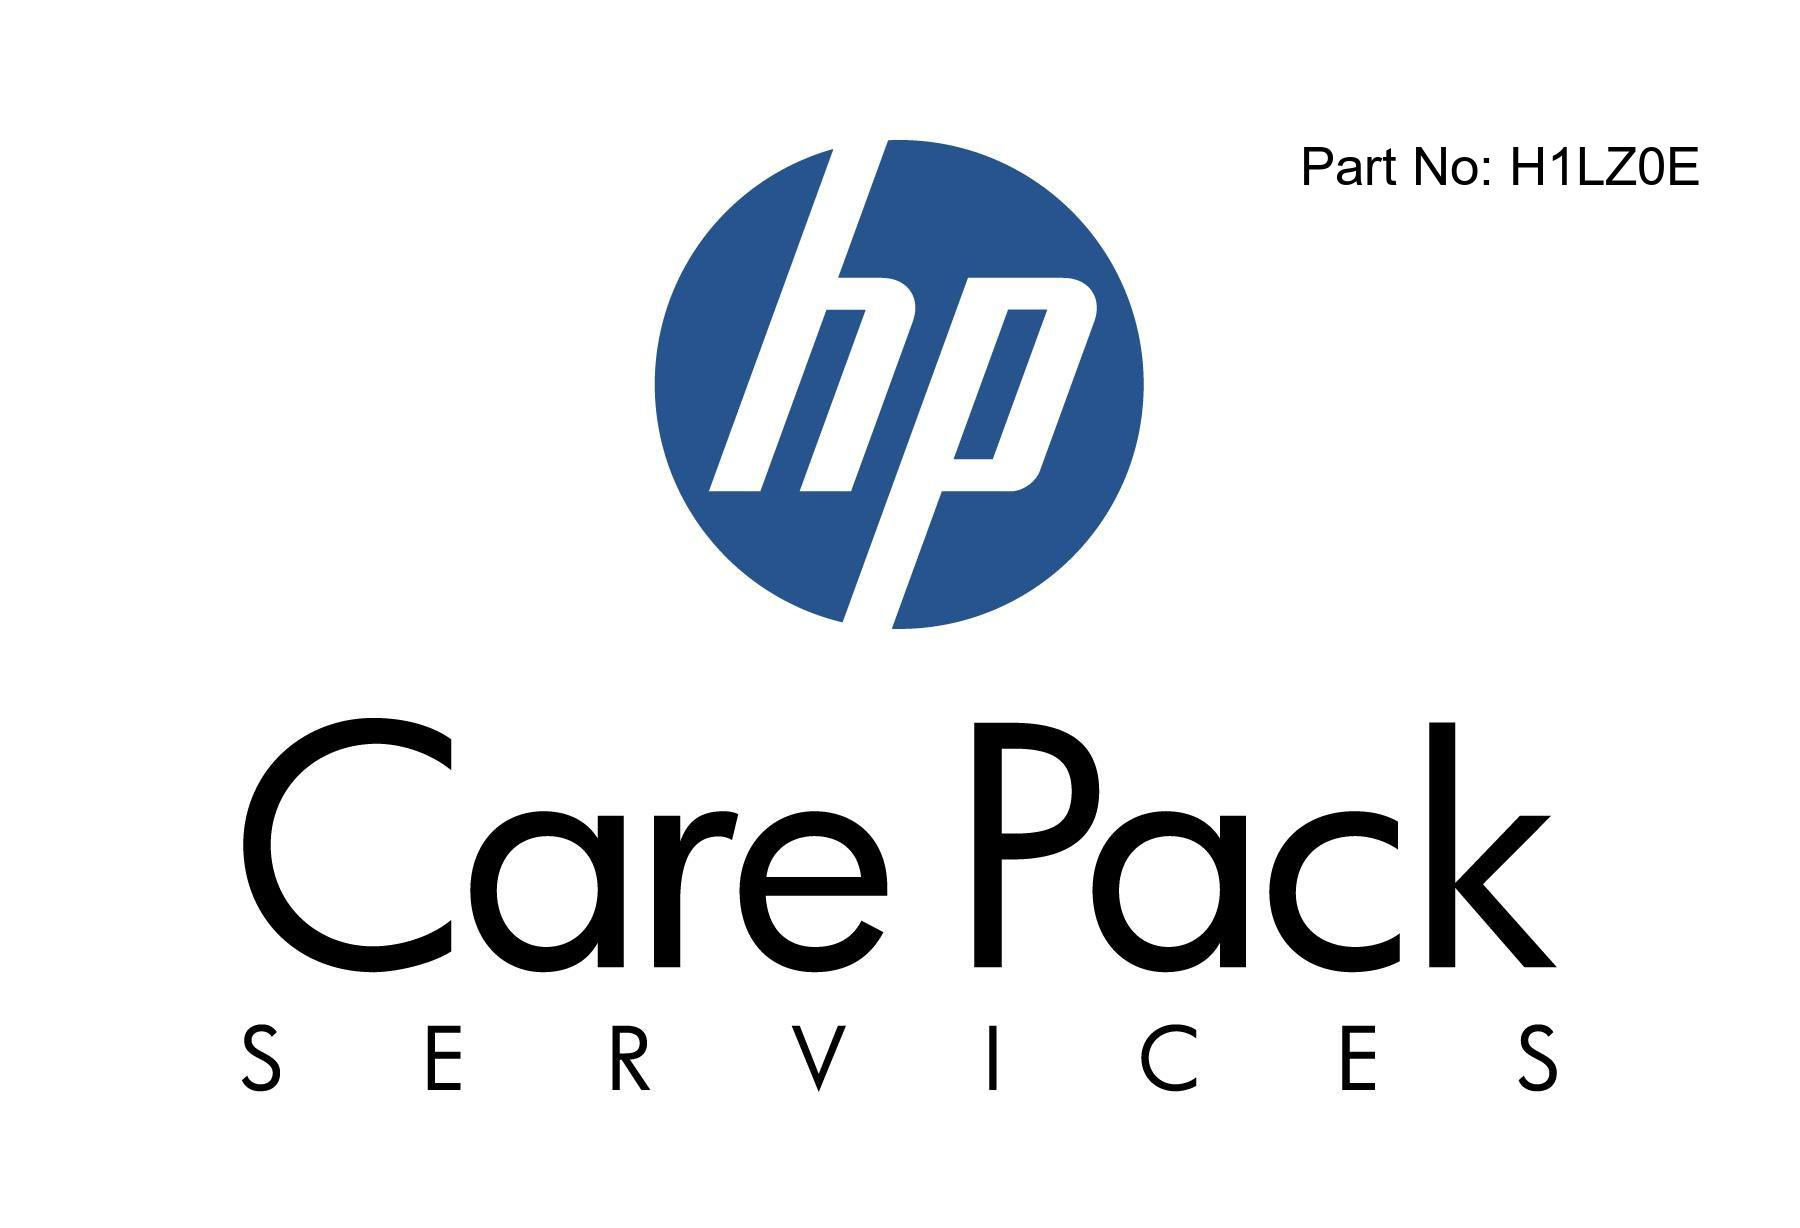 Proactive Care 24x7 Service - Extended service agreement - parts and labor - 3 years - on-site - 24x7 - response time: 4 h